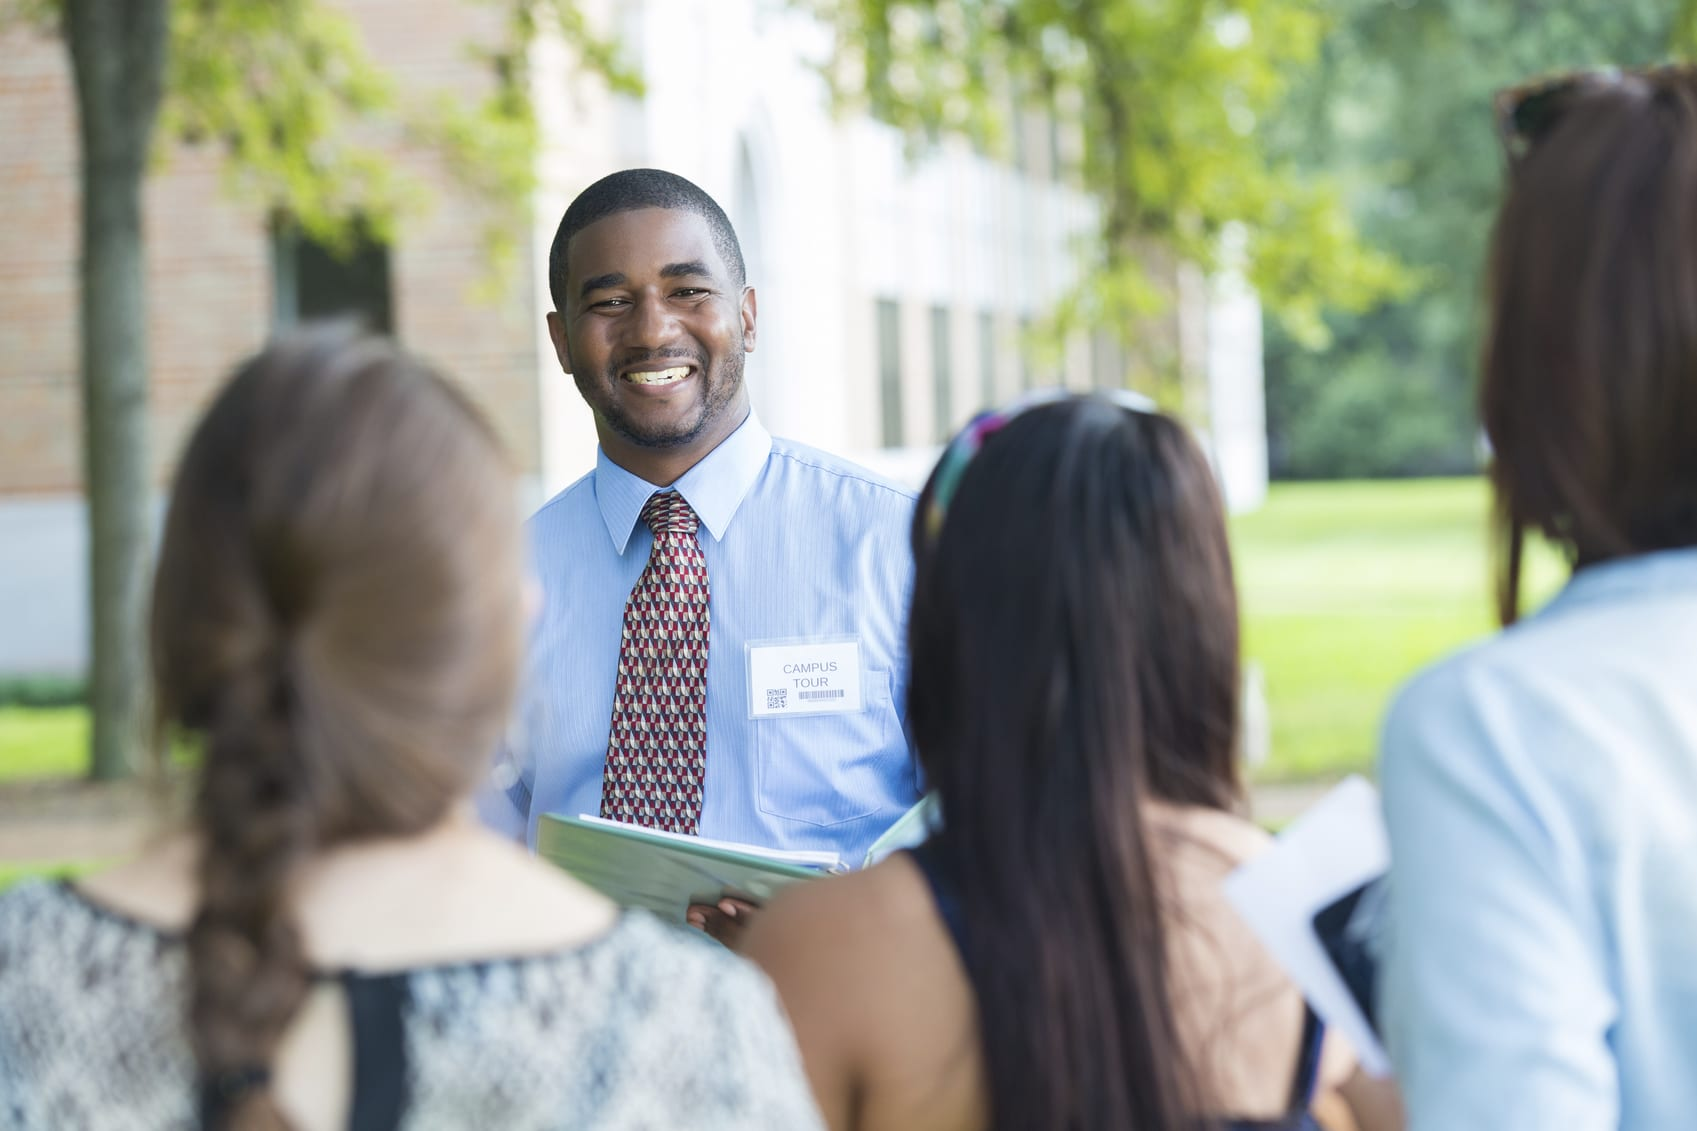 College campus tour guide talking with prospective students outdoors